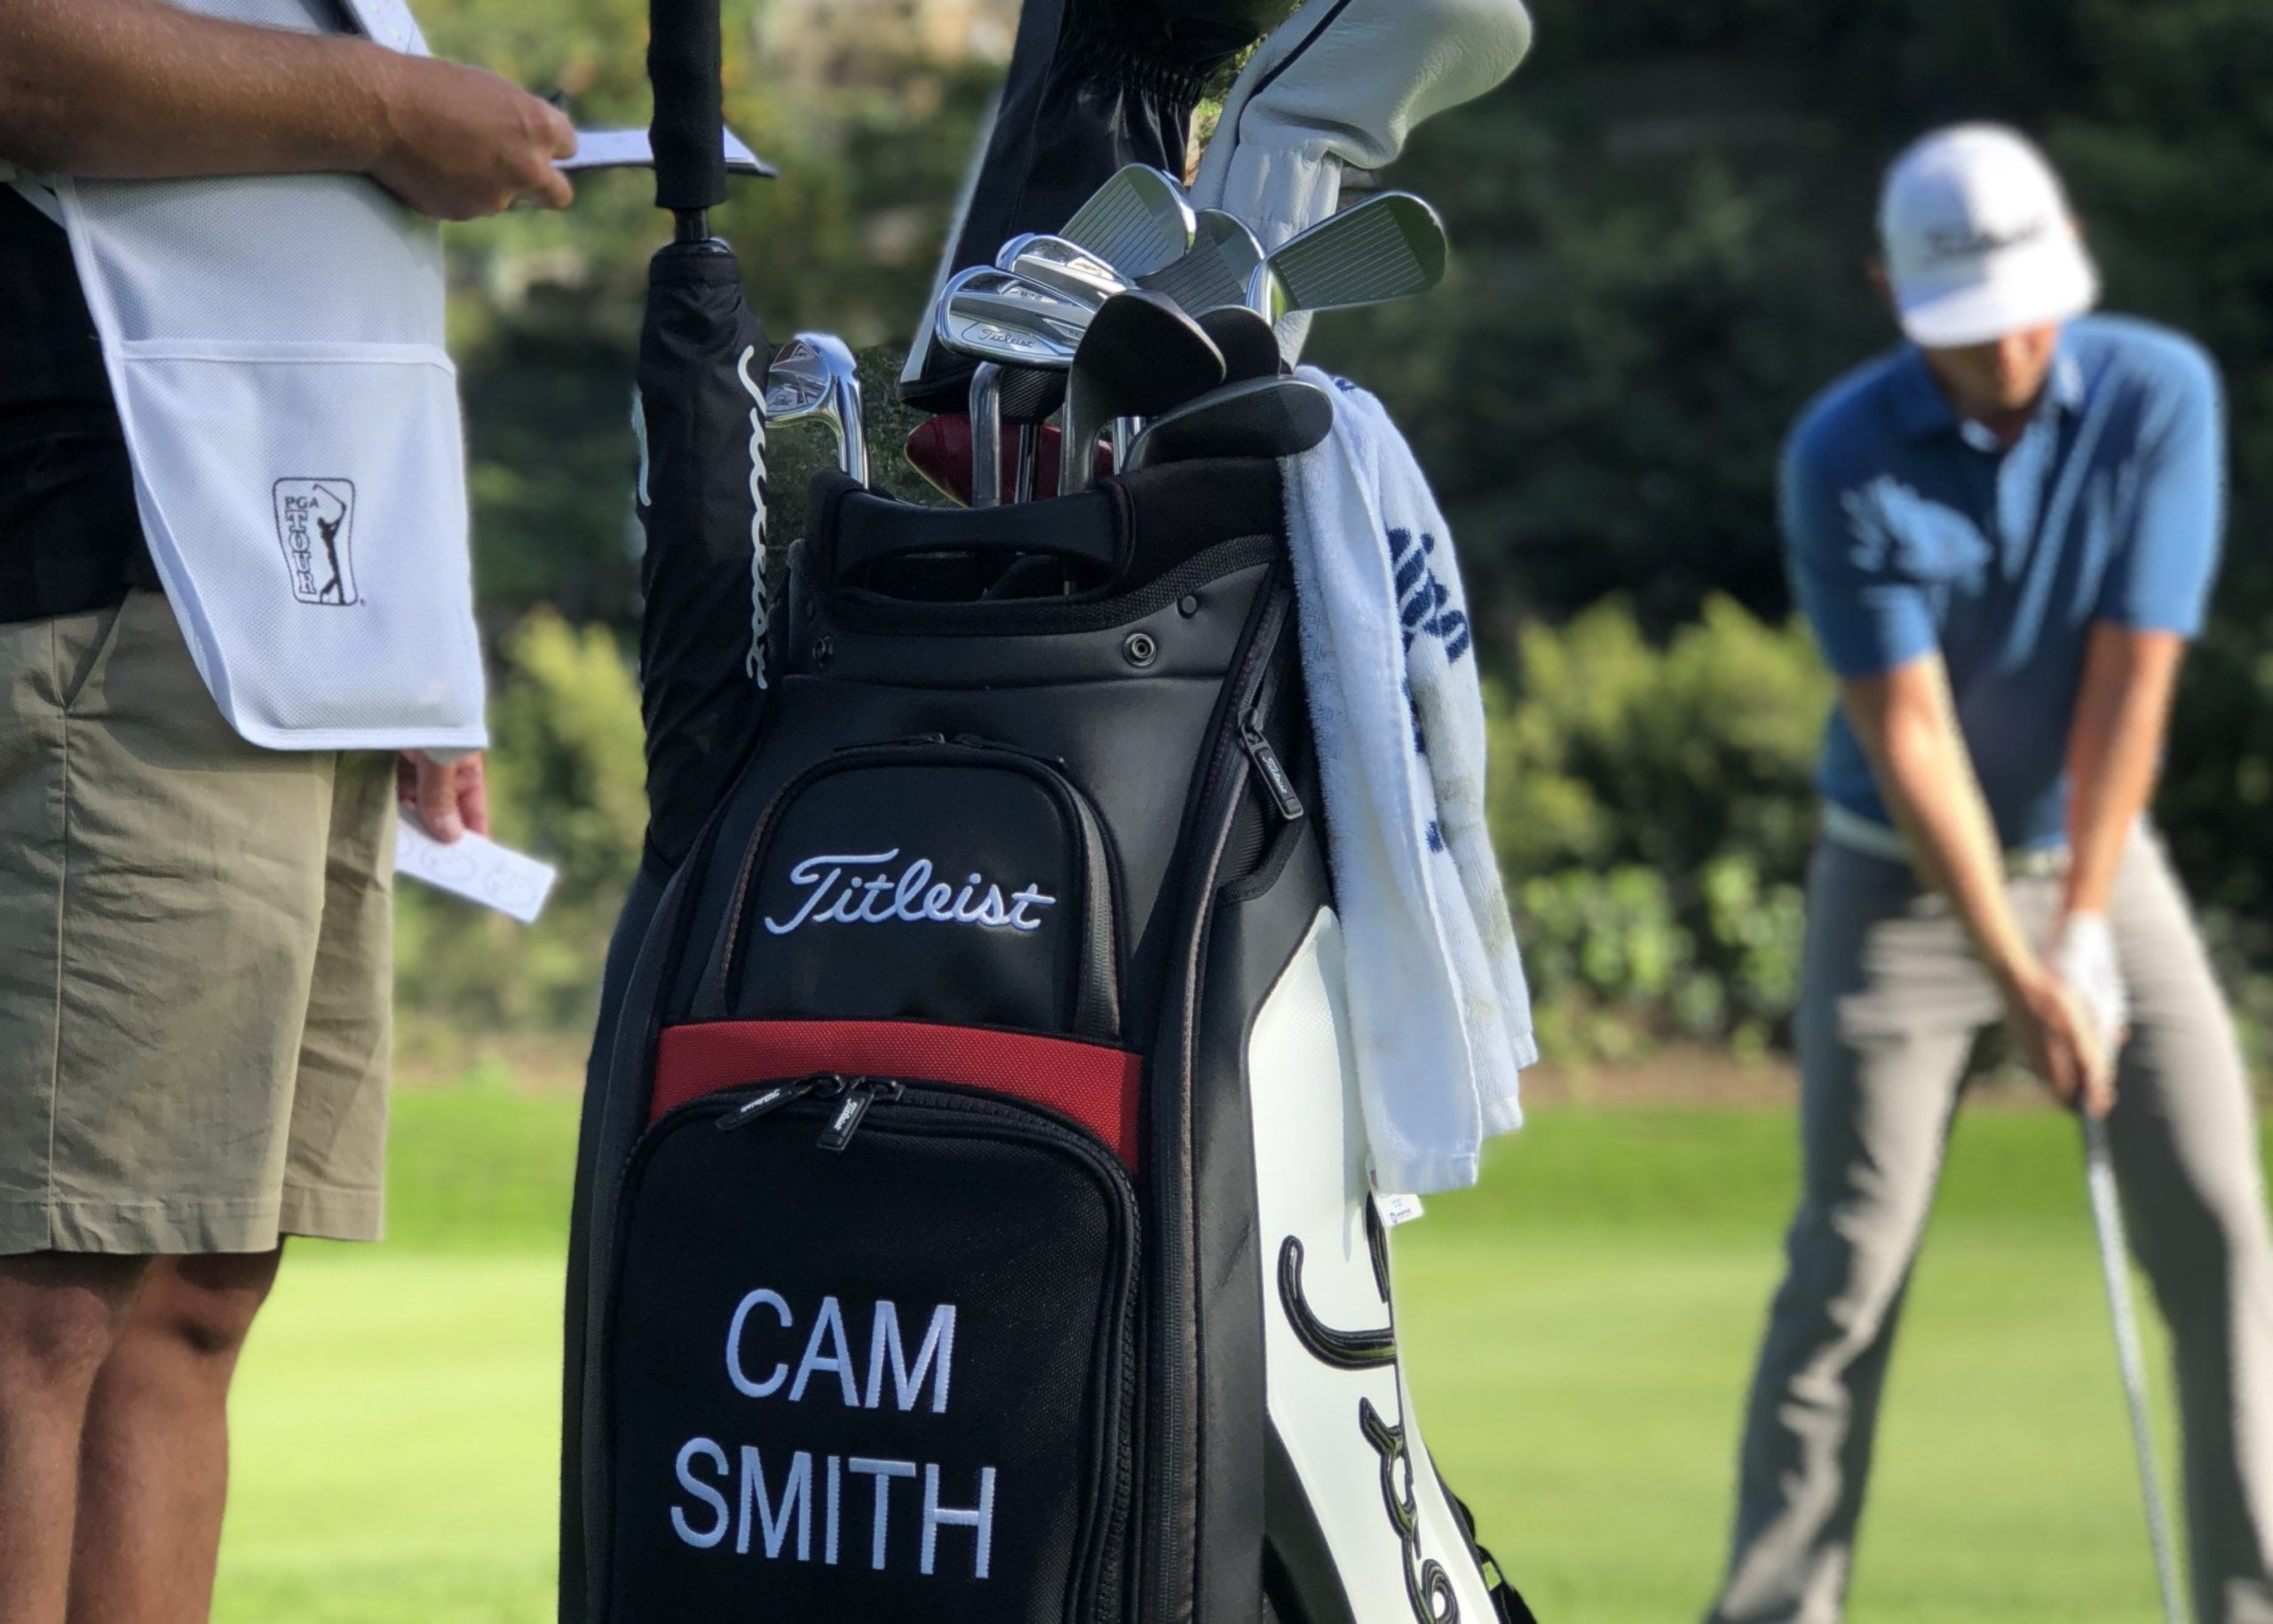 Cam Smith golfer & Caddy